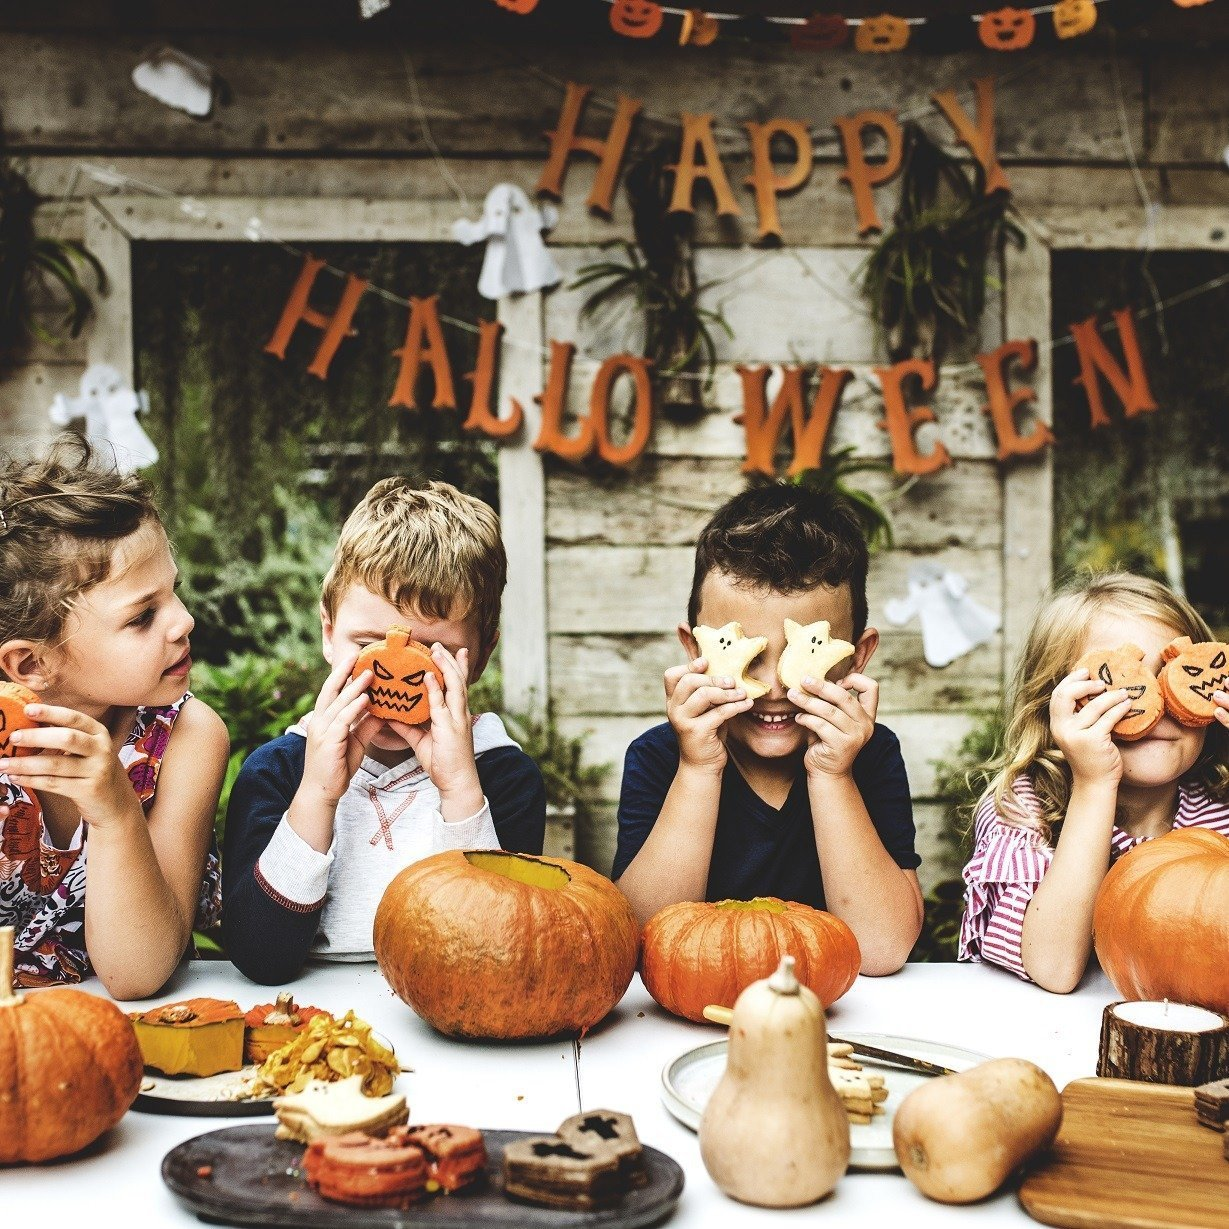 Playful kids enjoying a Halloween party